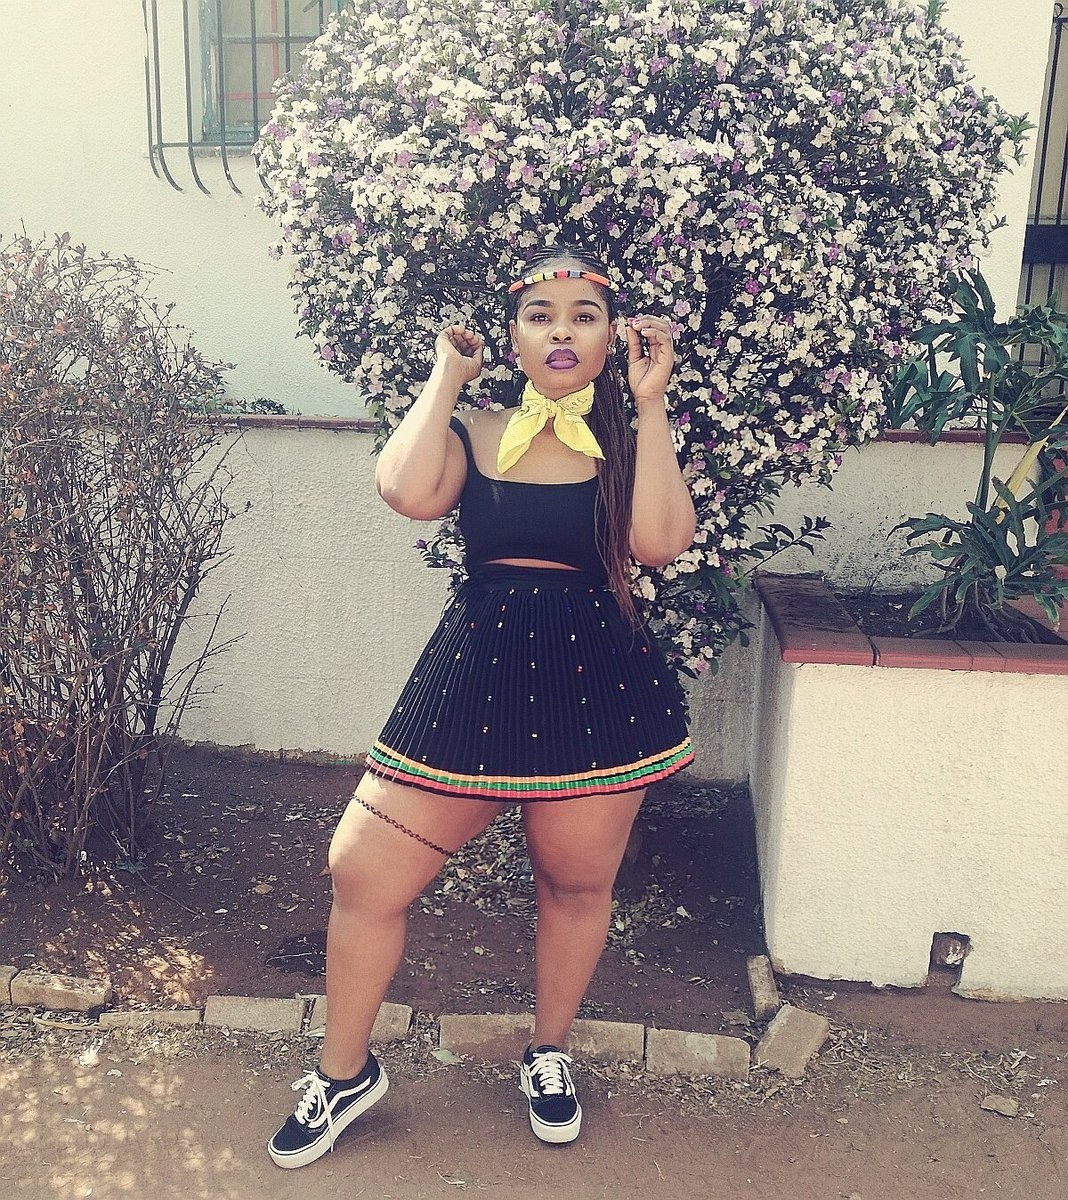 south-african-ladies-show-off-their-boobs-curves-and-stunning-beauty-as-they-celebrate-heritage-day-photos-8